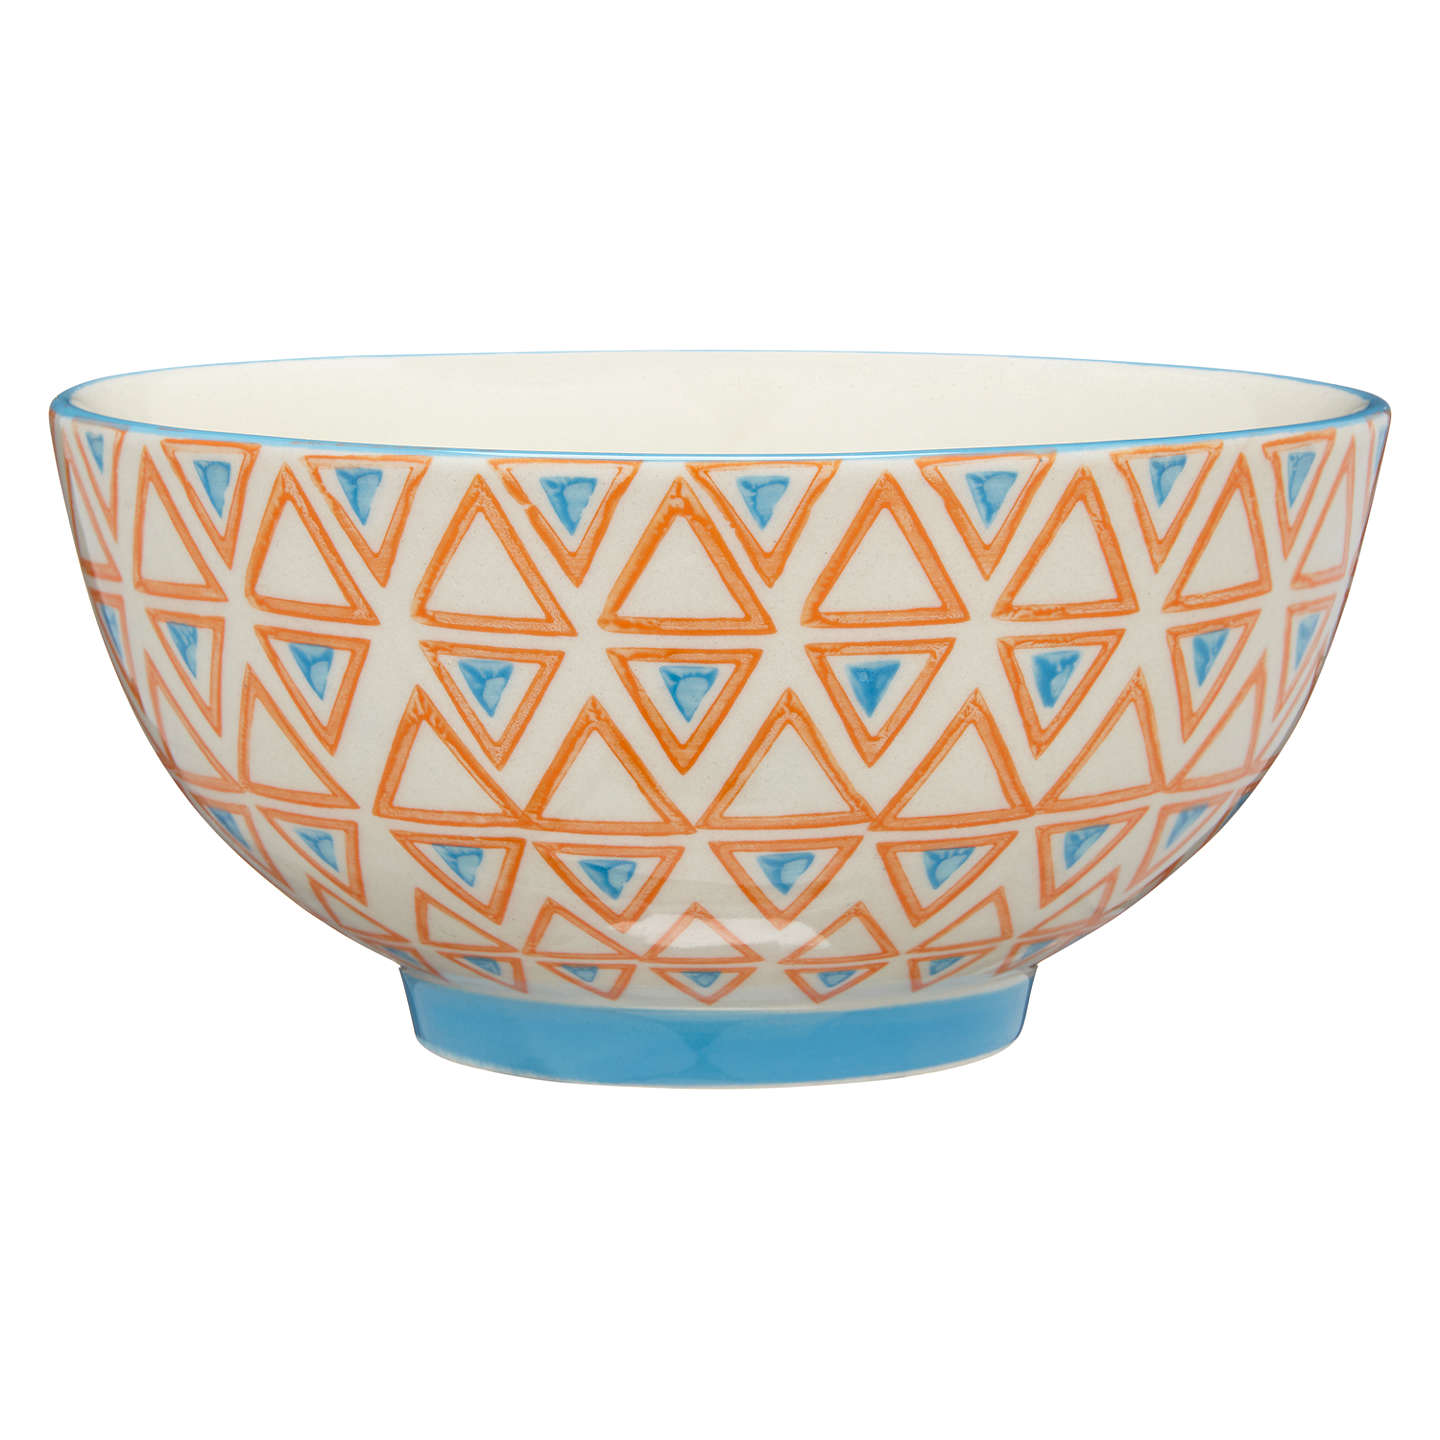 BuyPols Potten Dakara Triangles 14cm Bowl, Orange Online at johnlewis.com